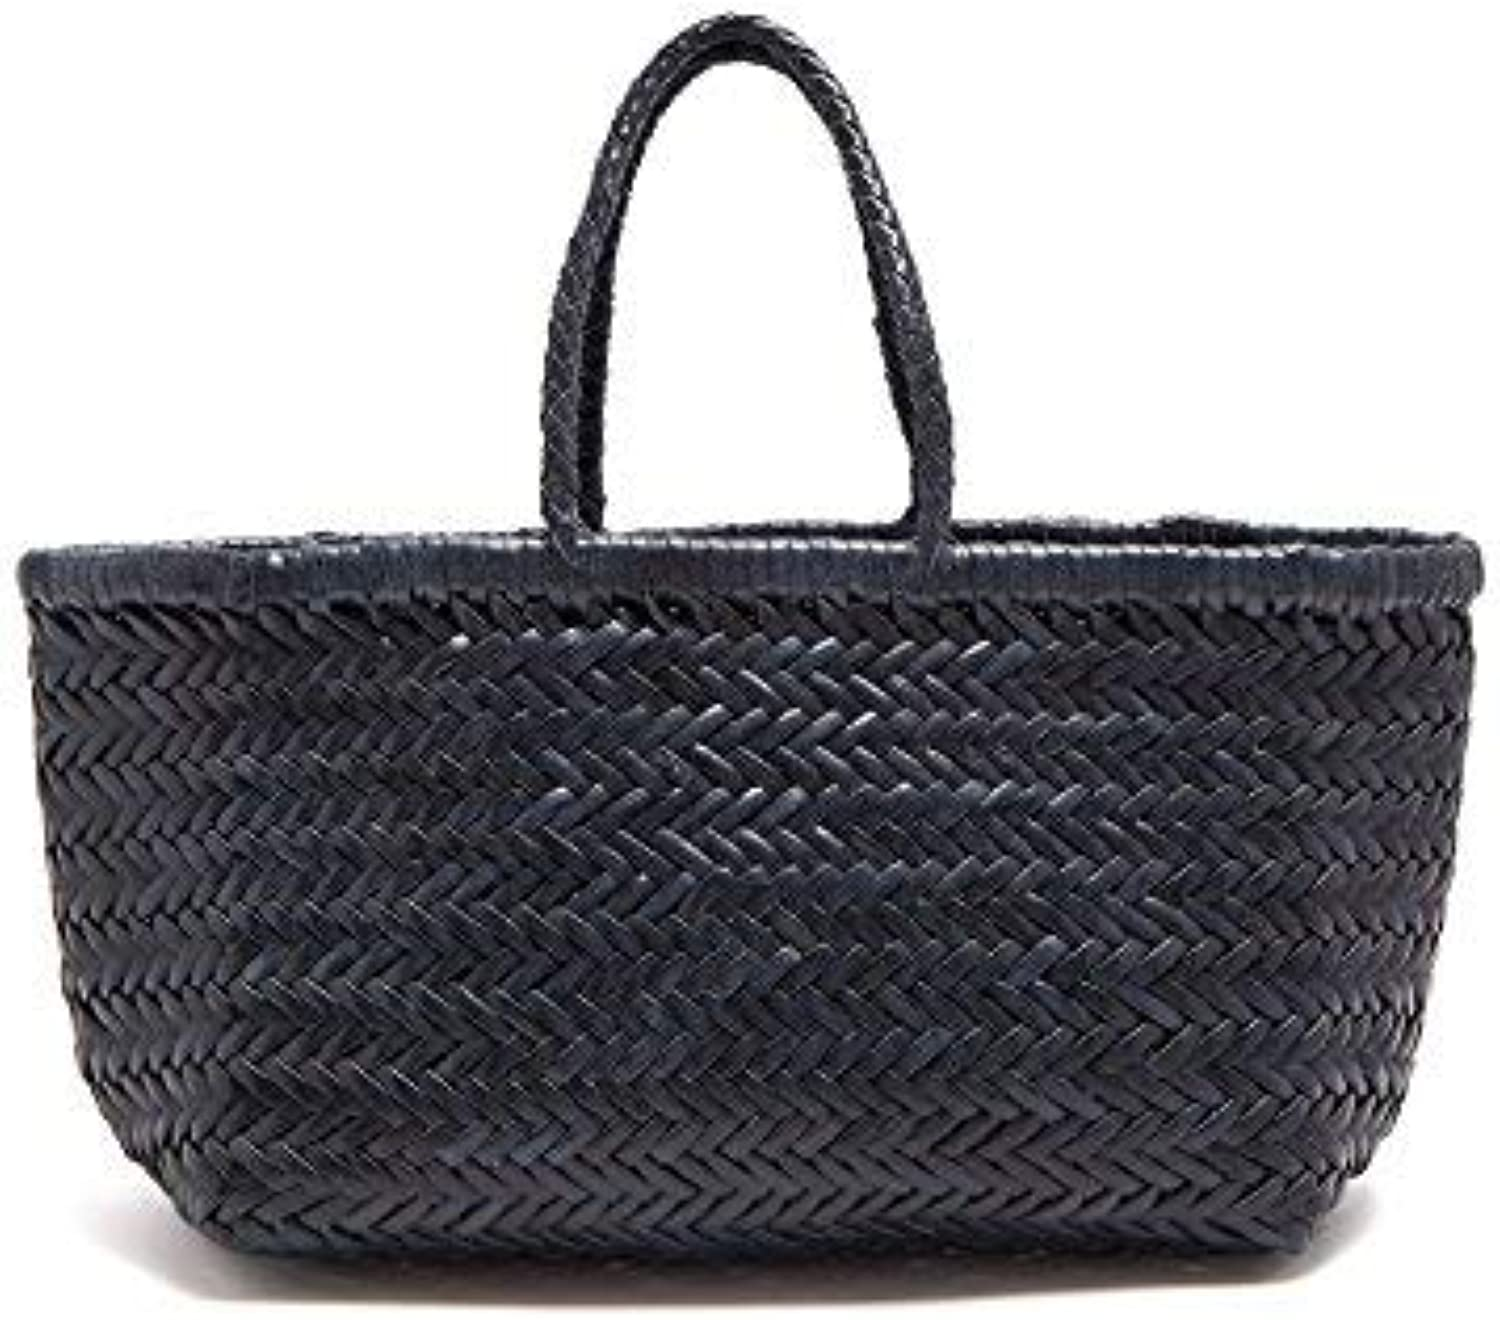 Woven Leather Tote Bag (Yoco) (Navy bluee, 20x15)